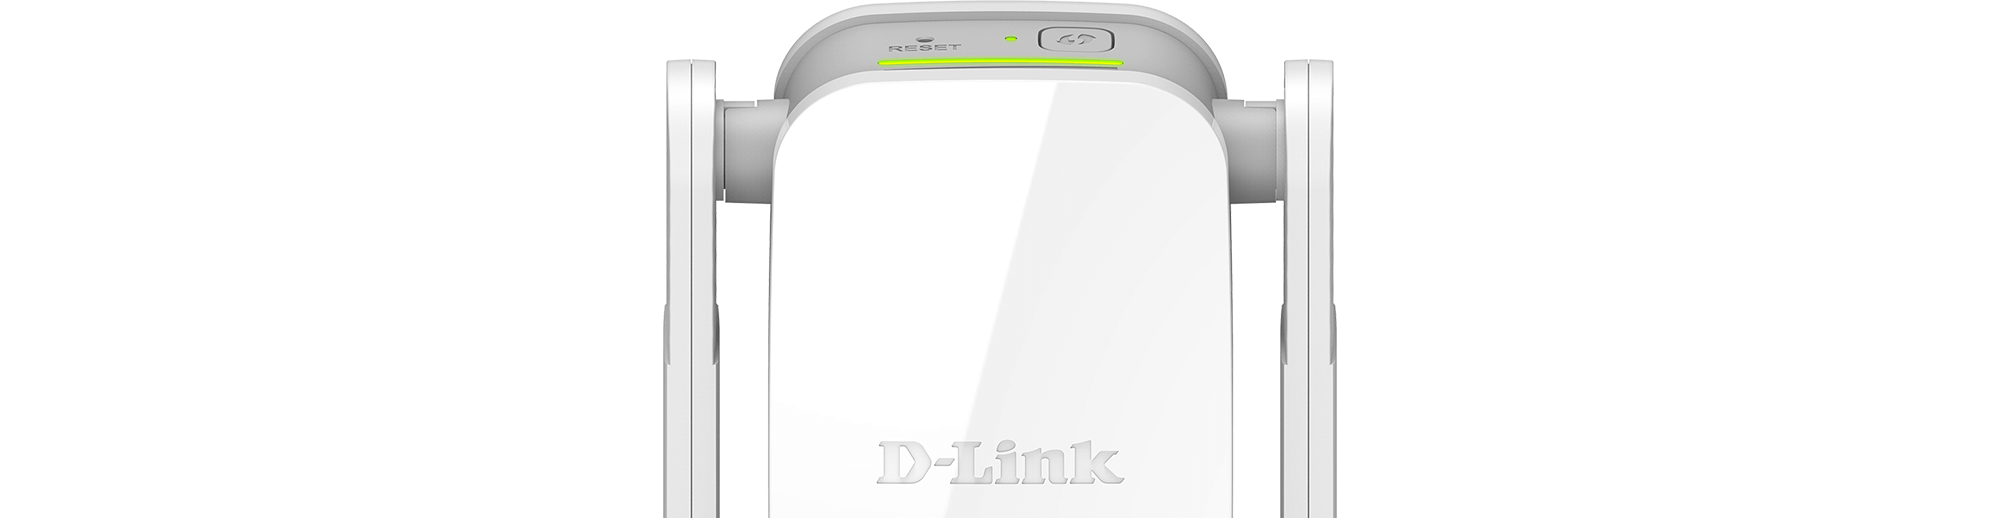 DAP-1610 wireless AC range extender overview